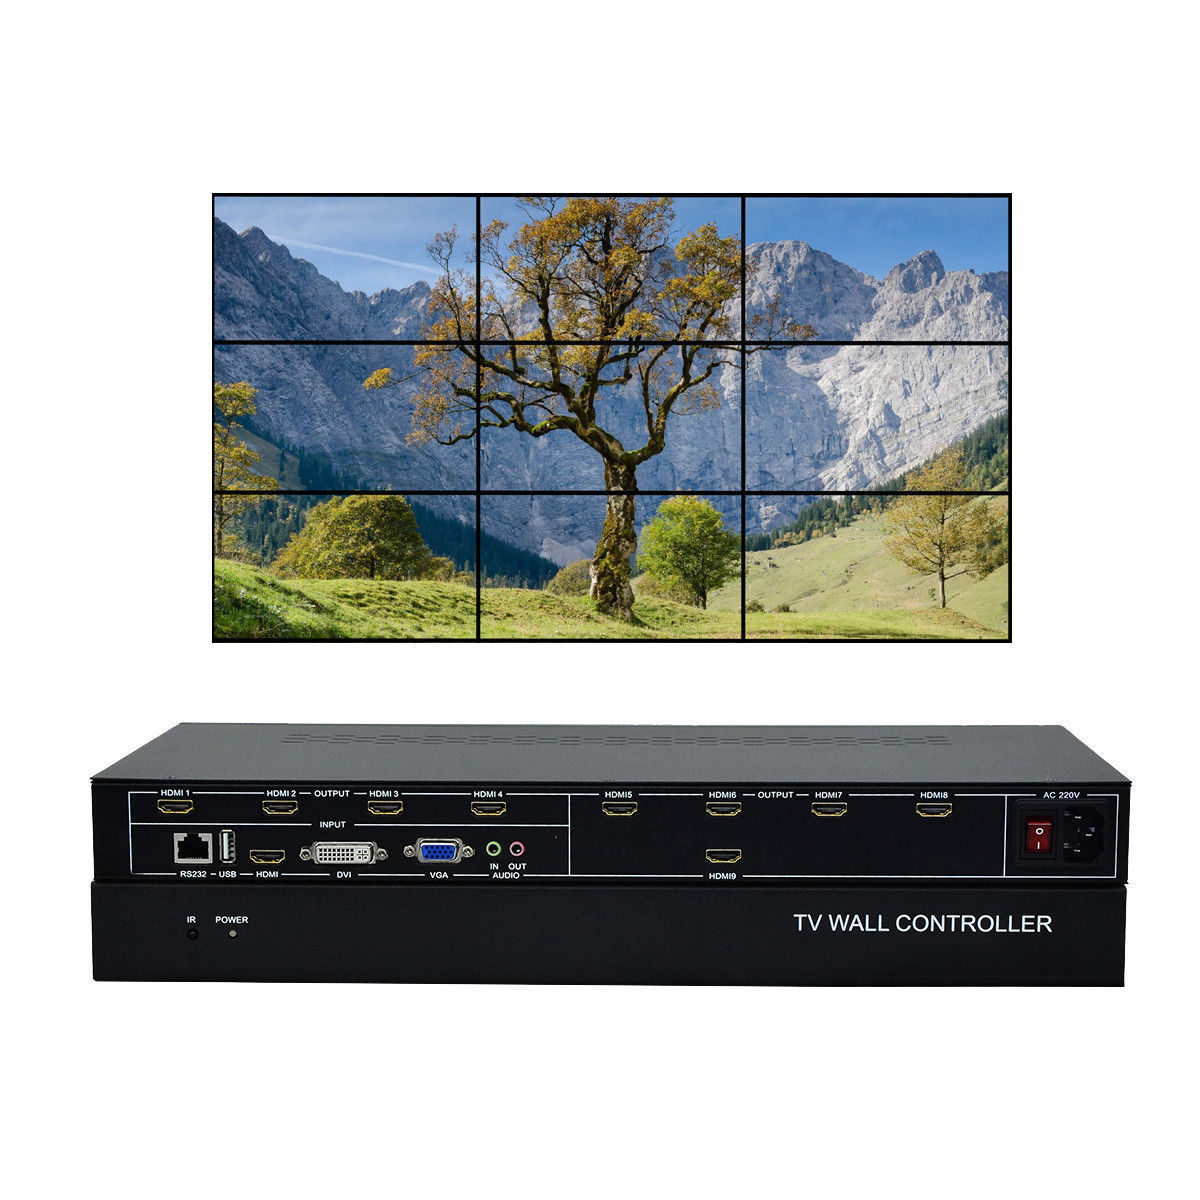 ESZYM 9 Canali TV Controller Video Wall 3x3 2x4 4x2 HDMI DVI VGA USB Processore Video